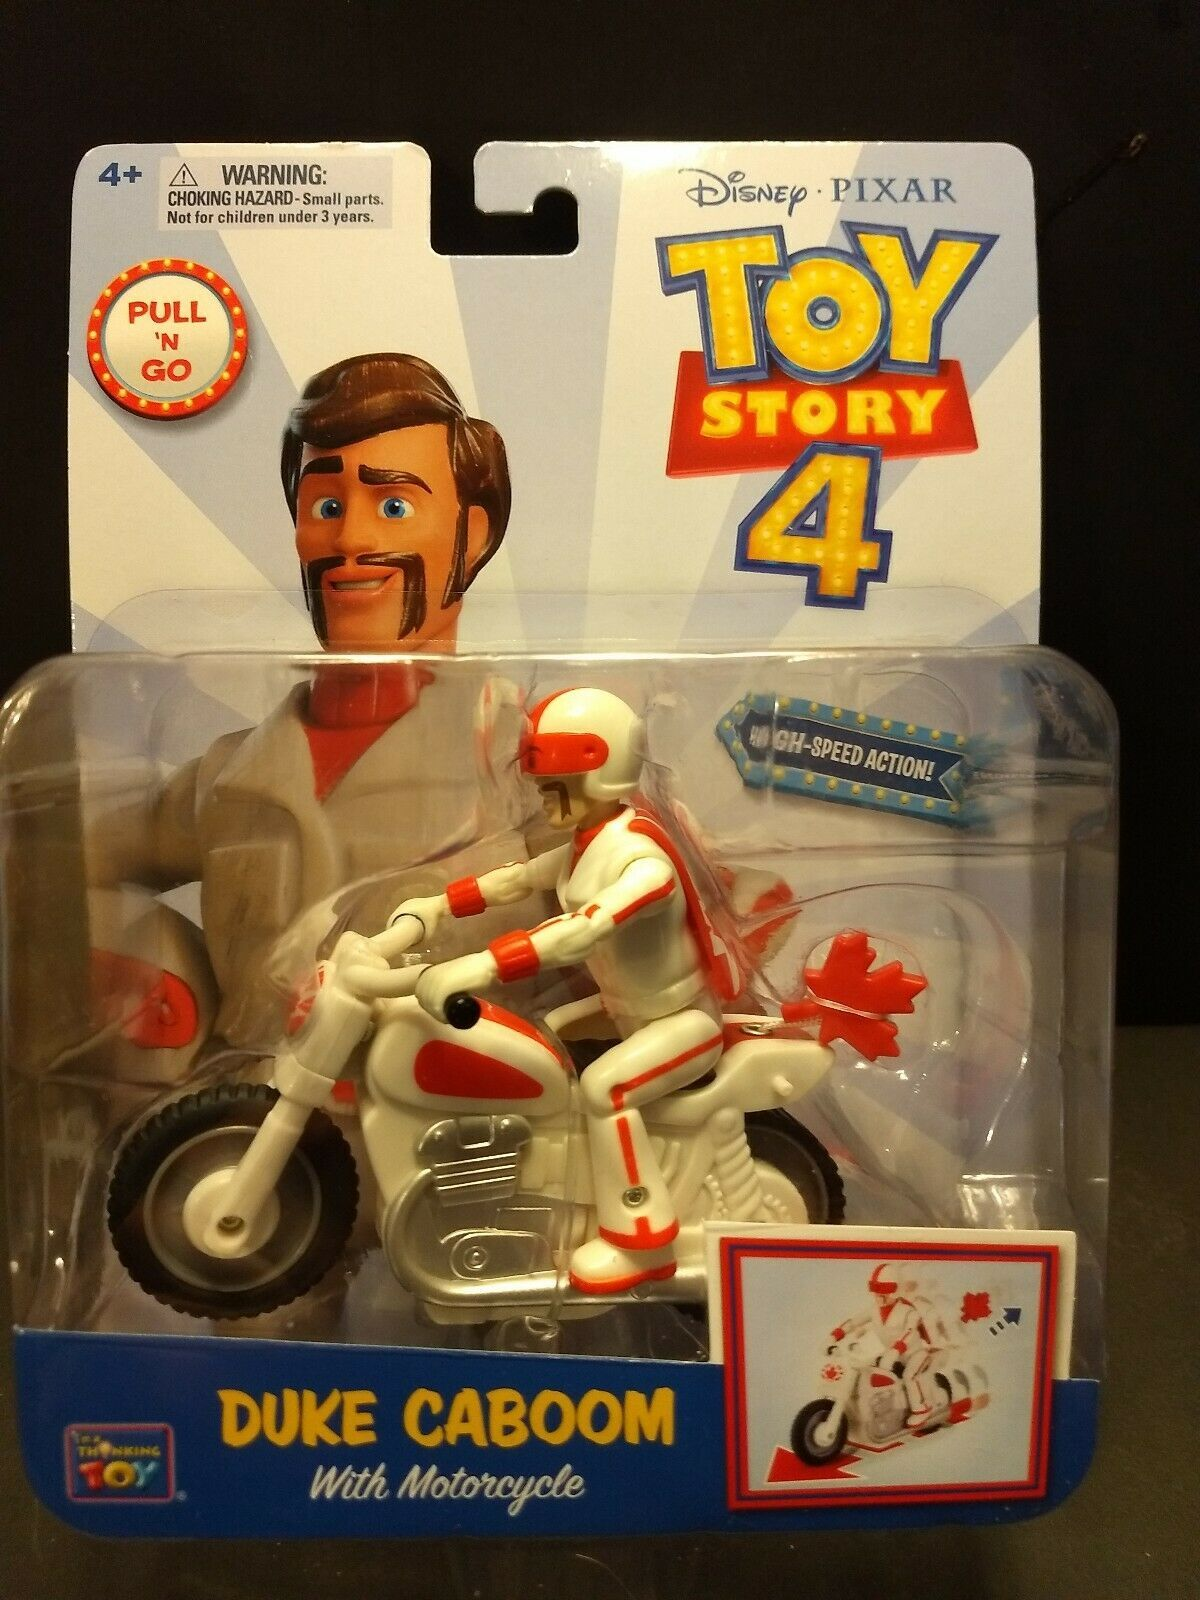 Primary image for New sealed Walt Disney Pixar Toy Story 4 Duke Caboom Motorcycle Daredevil figure